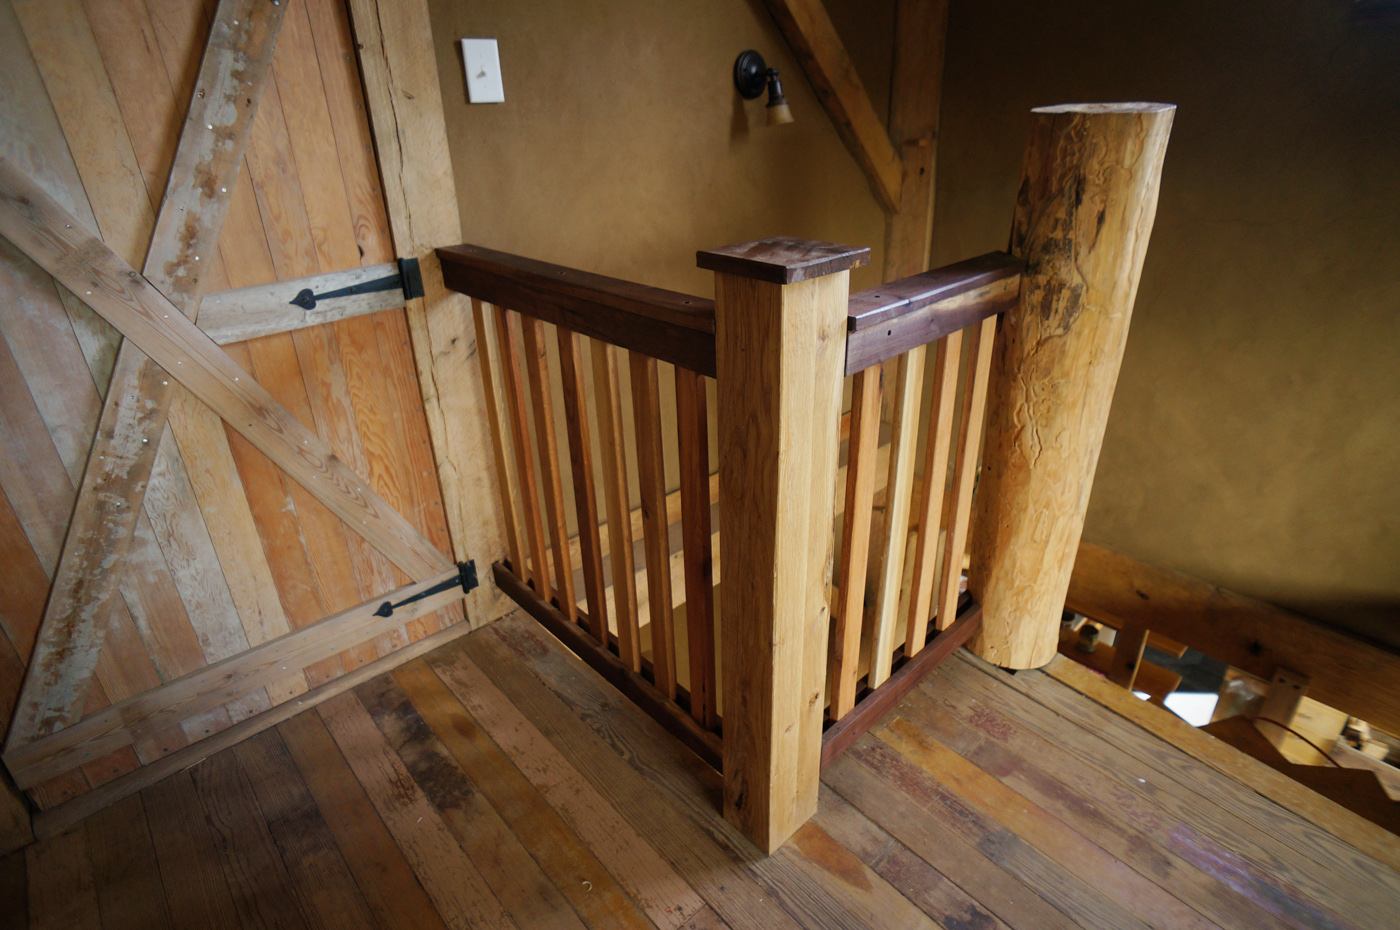 Building a diy wooden interior stair railing the year of mud for Wooden handrails for stairs interior